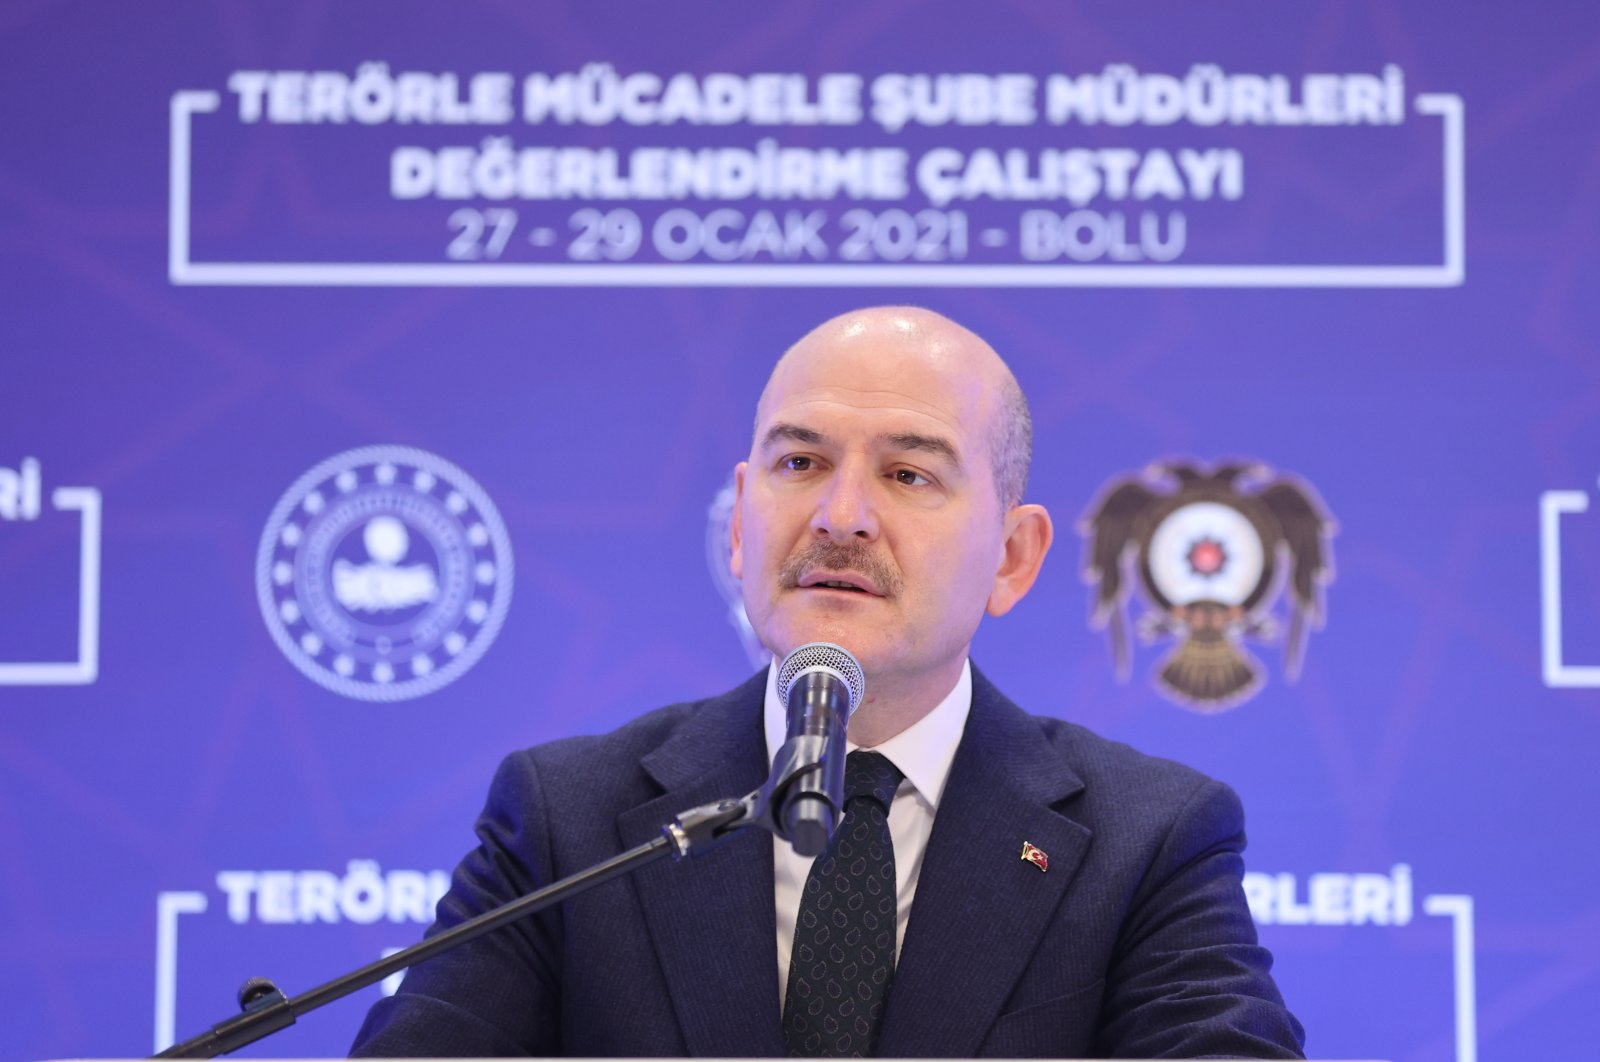 Interior Minister Süleyman Soylu speaks at a workshop on the fight against terrorism in Bolu province, northern Turkey, Jan. 27, 2021. (AA Photo)